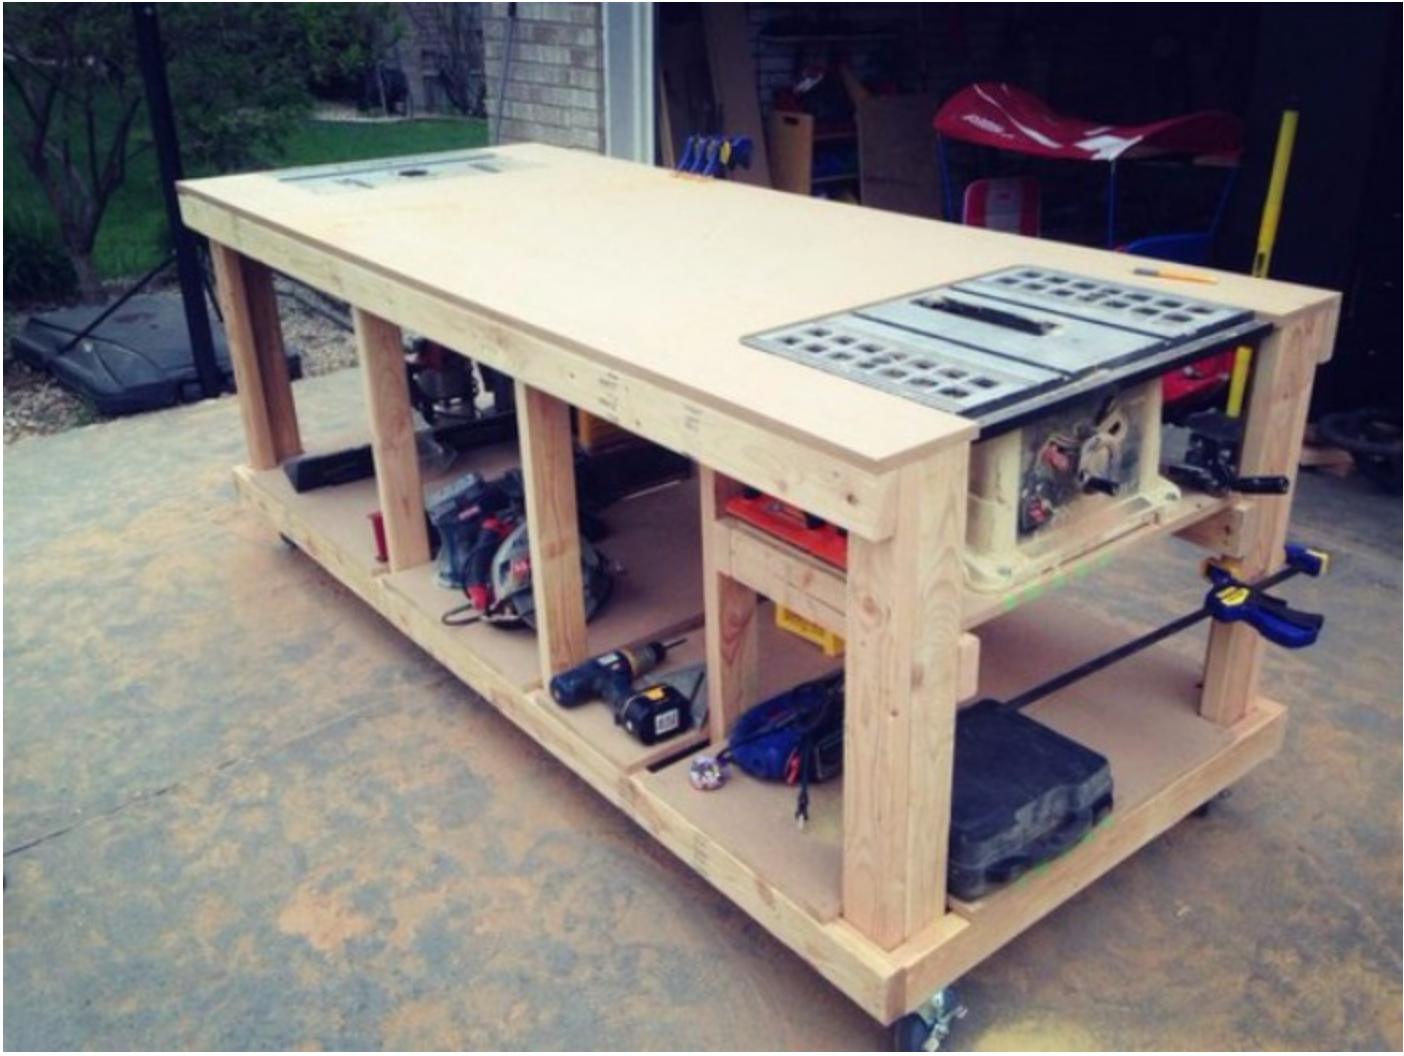 Easy Build Work Bench With Router And Table Saw Built In Workbench Garage Work Bench Woodworking Projects